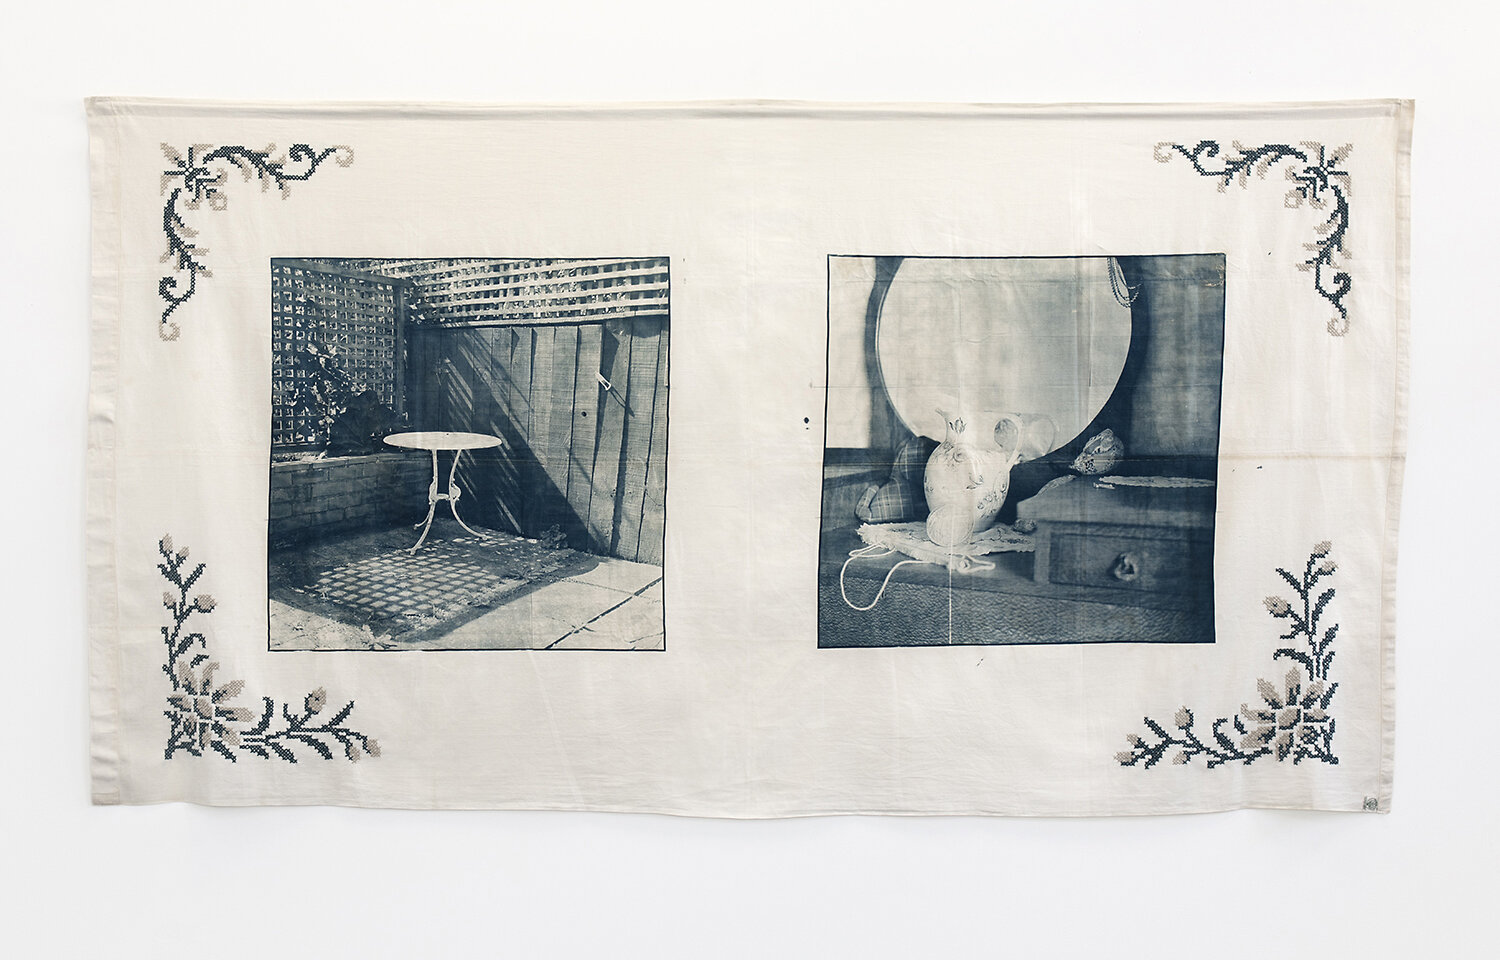 Caroline McQuarrie,  Reasons For Silence (i) , from the series  Reasons For Silence , cyanotype and wool embroidery on vintage cotton bed sheet, 2010. Courtesy the artist.